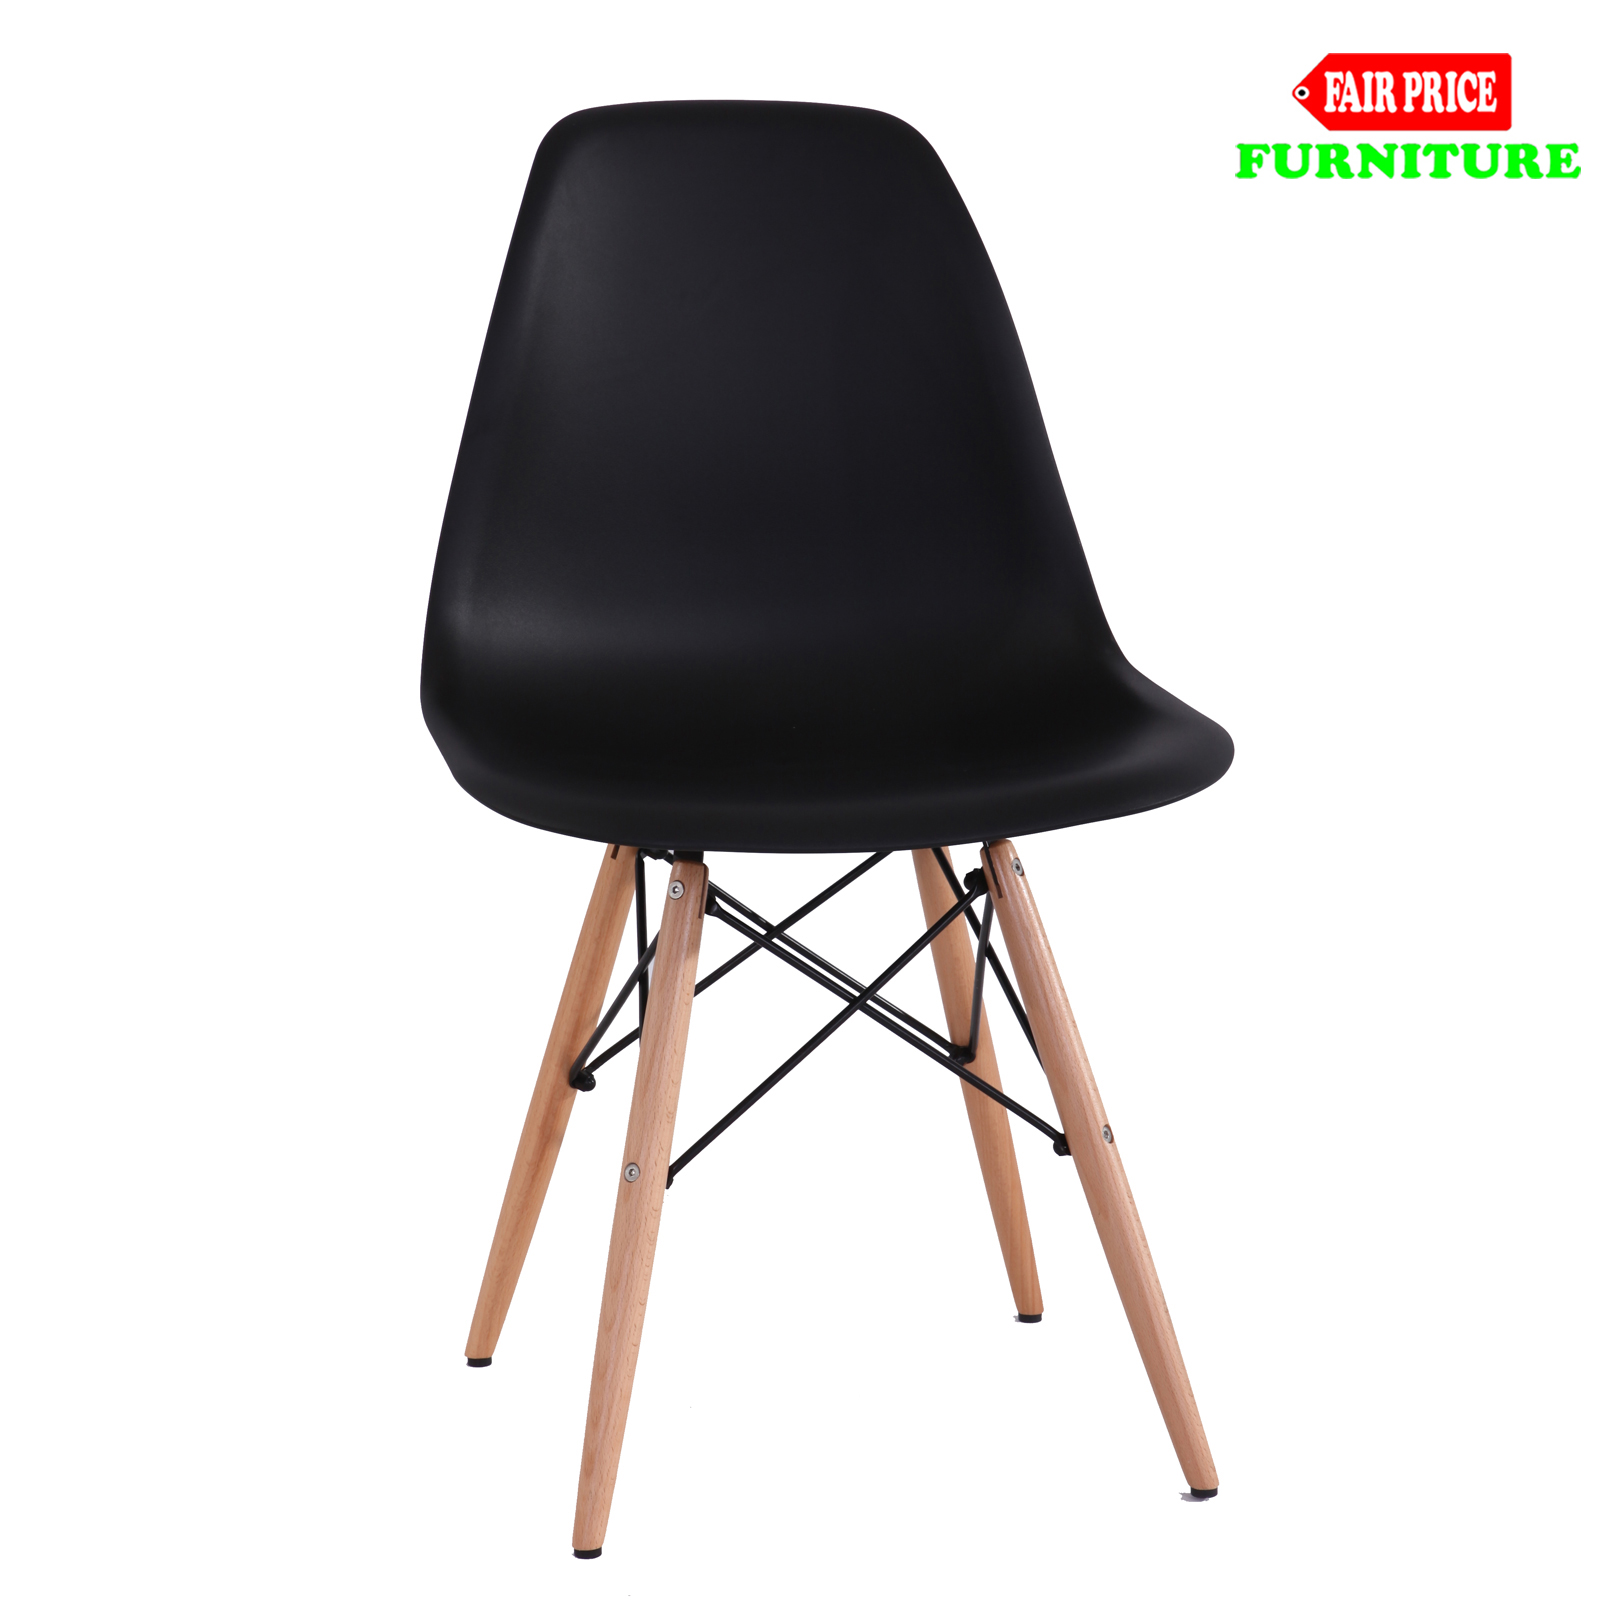 4 x retro replica eames chick dsw dining chairs office for Eames dsw replica